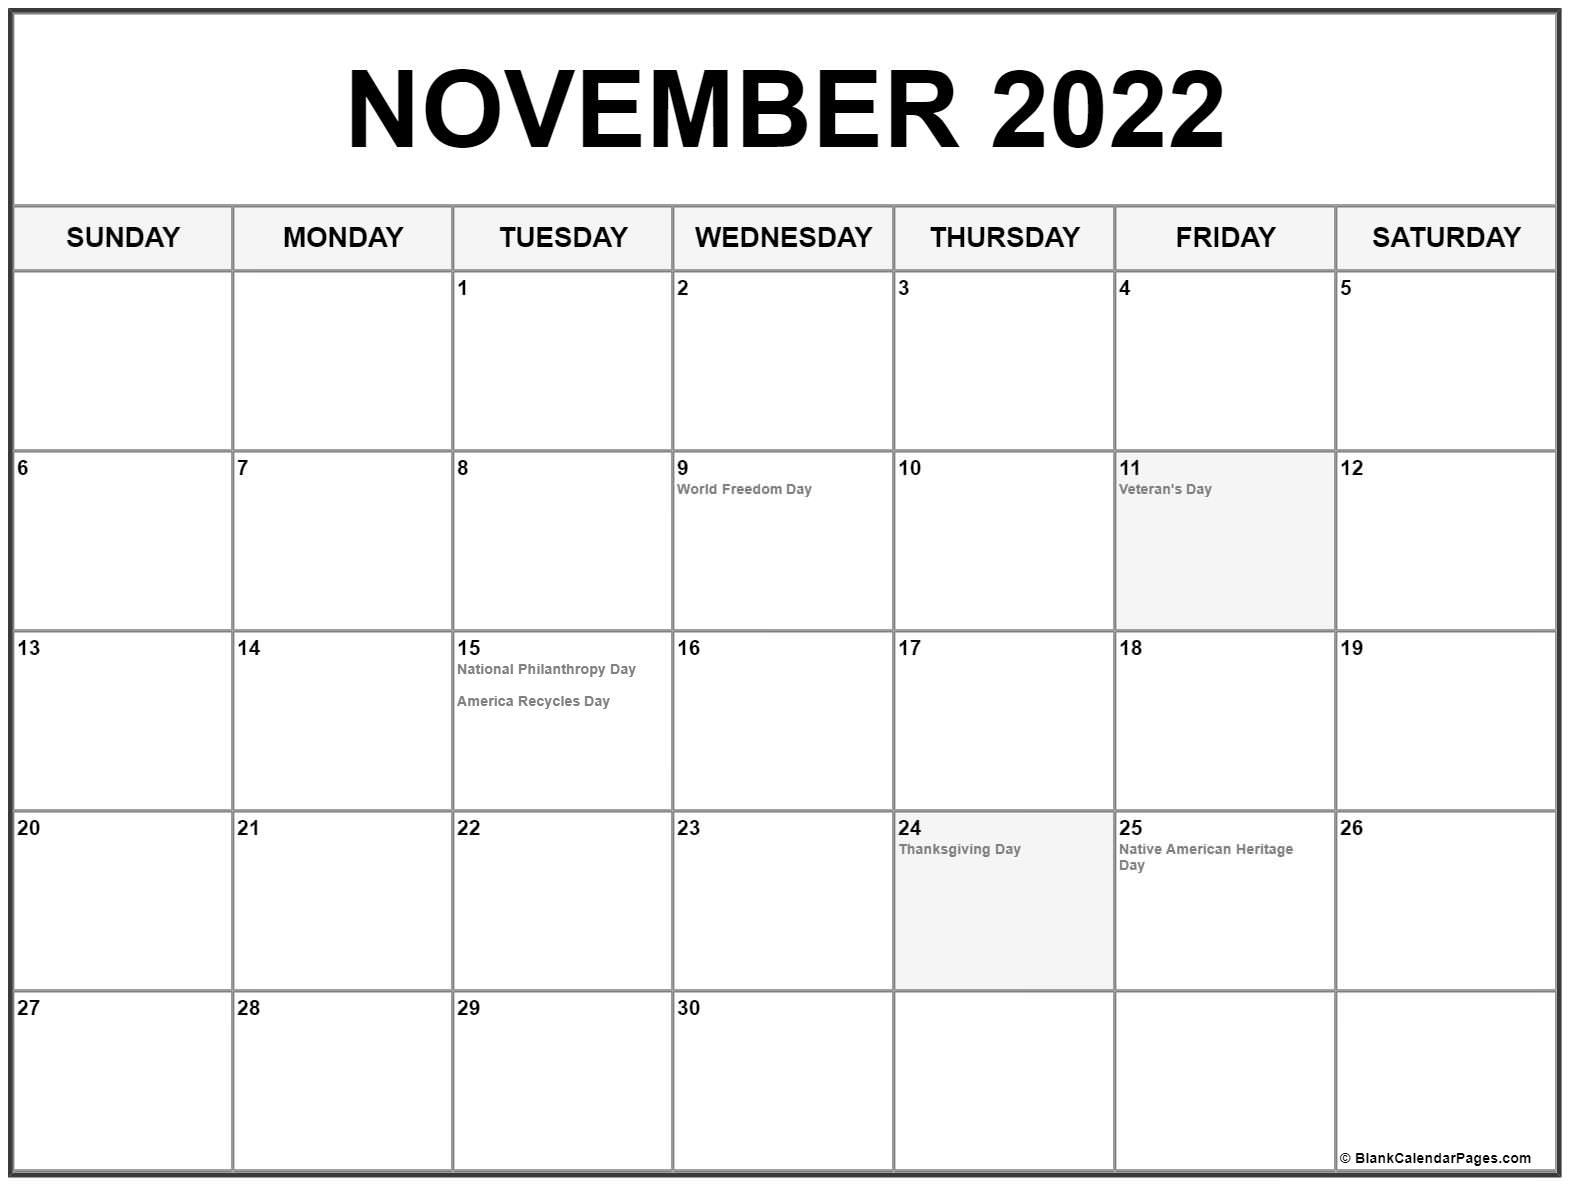 November 2022 calendar with holidays